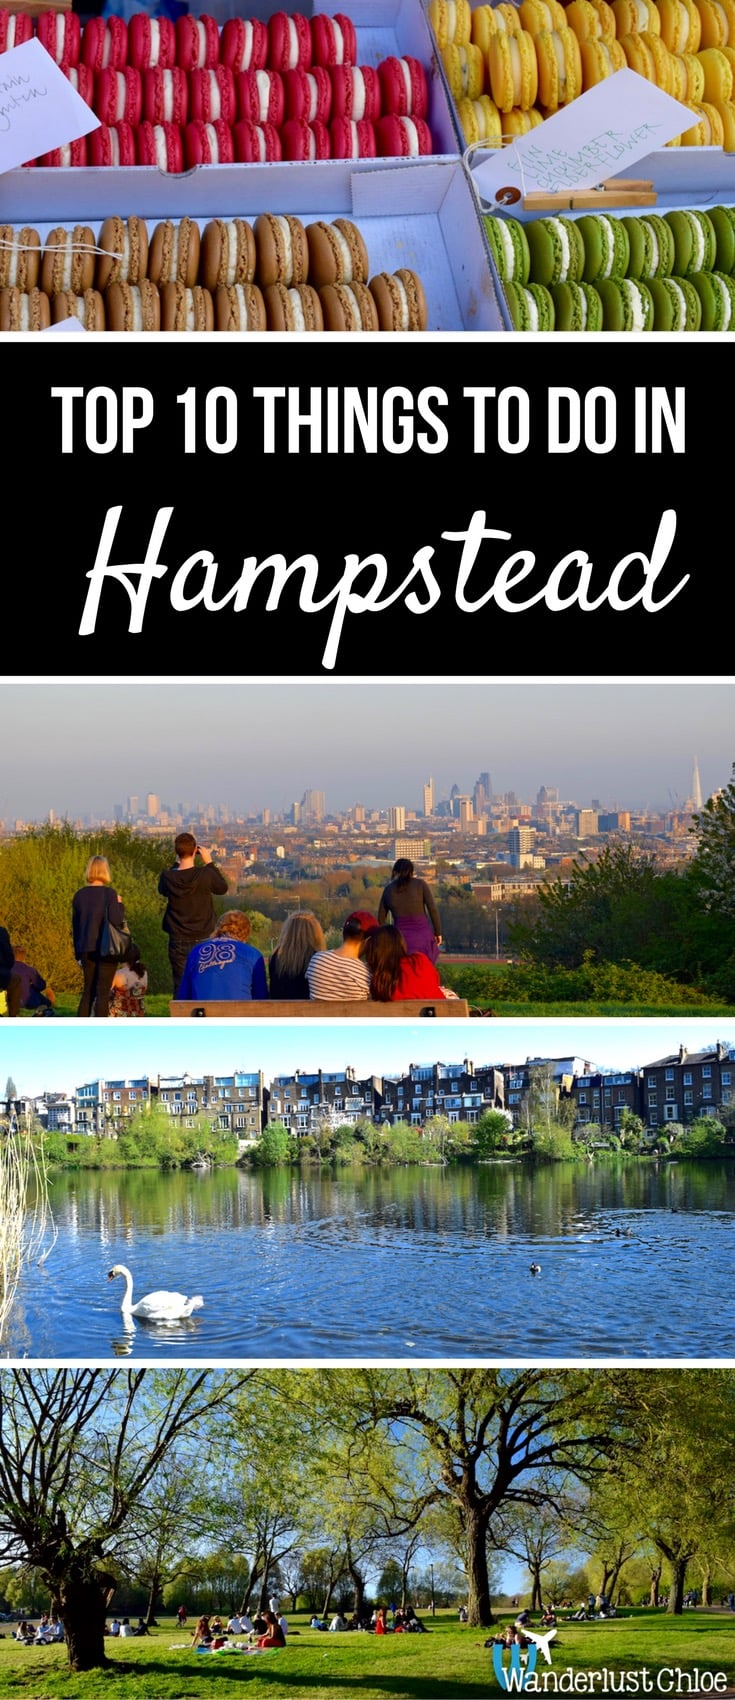 Top 10 Things To Do In Hampstead